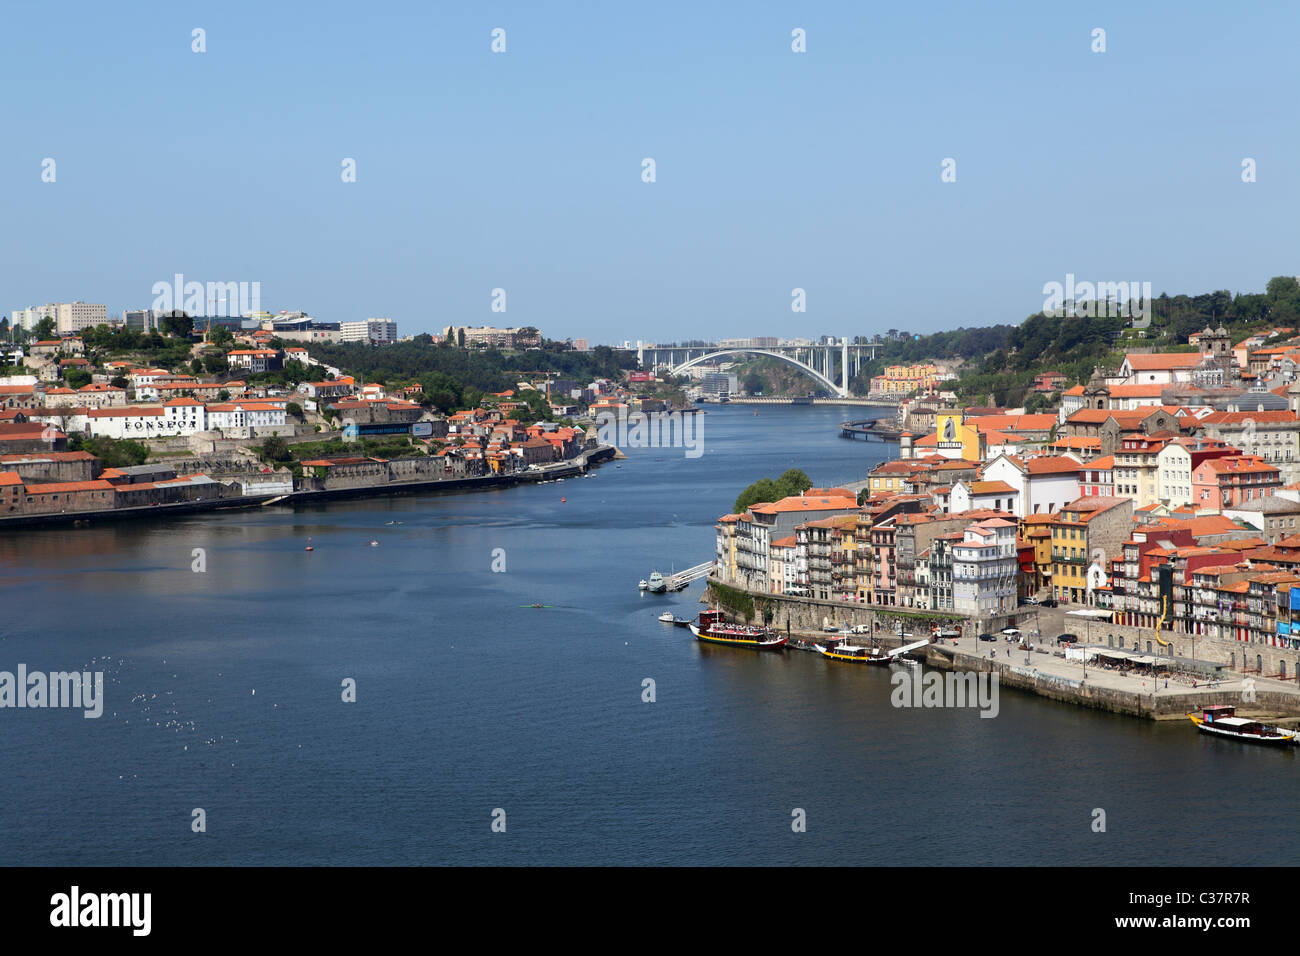 fluss douro stockfotos fluss douro bilder alamy. Black Bedroom Furniture Sets. Home Design Ideas